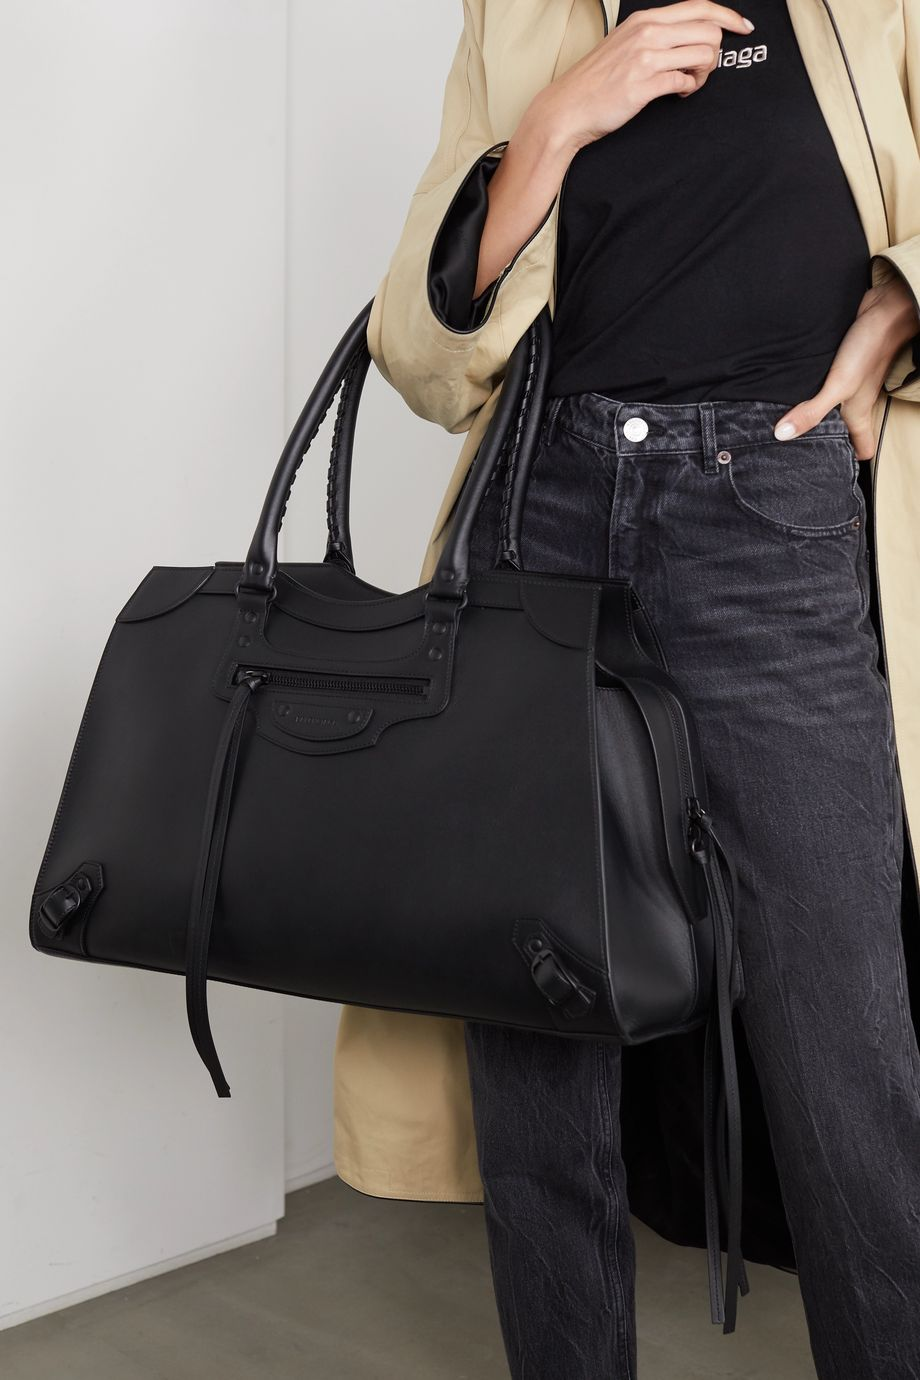 Balenciaga Classic City large leather tote